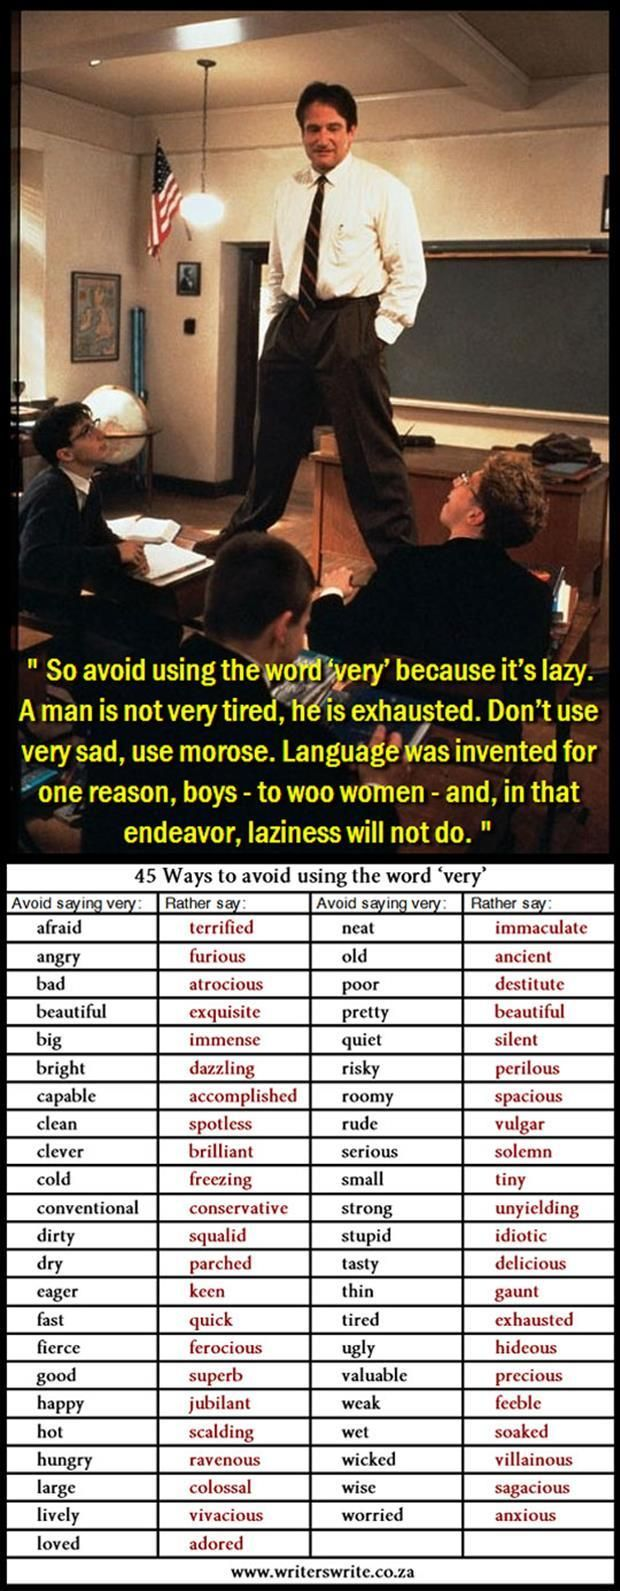 Ignore the bad language, but a good idea for a literacy lesson-avoiding the use of very.